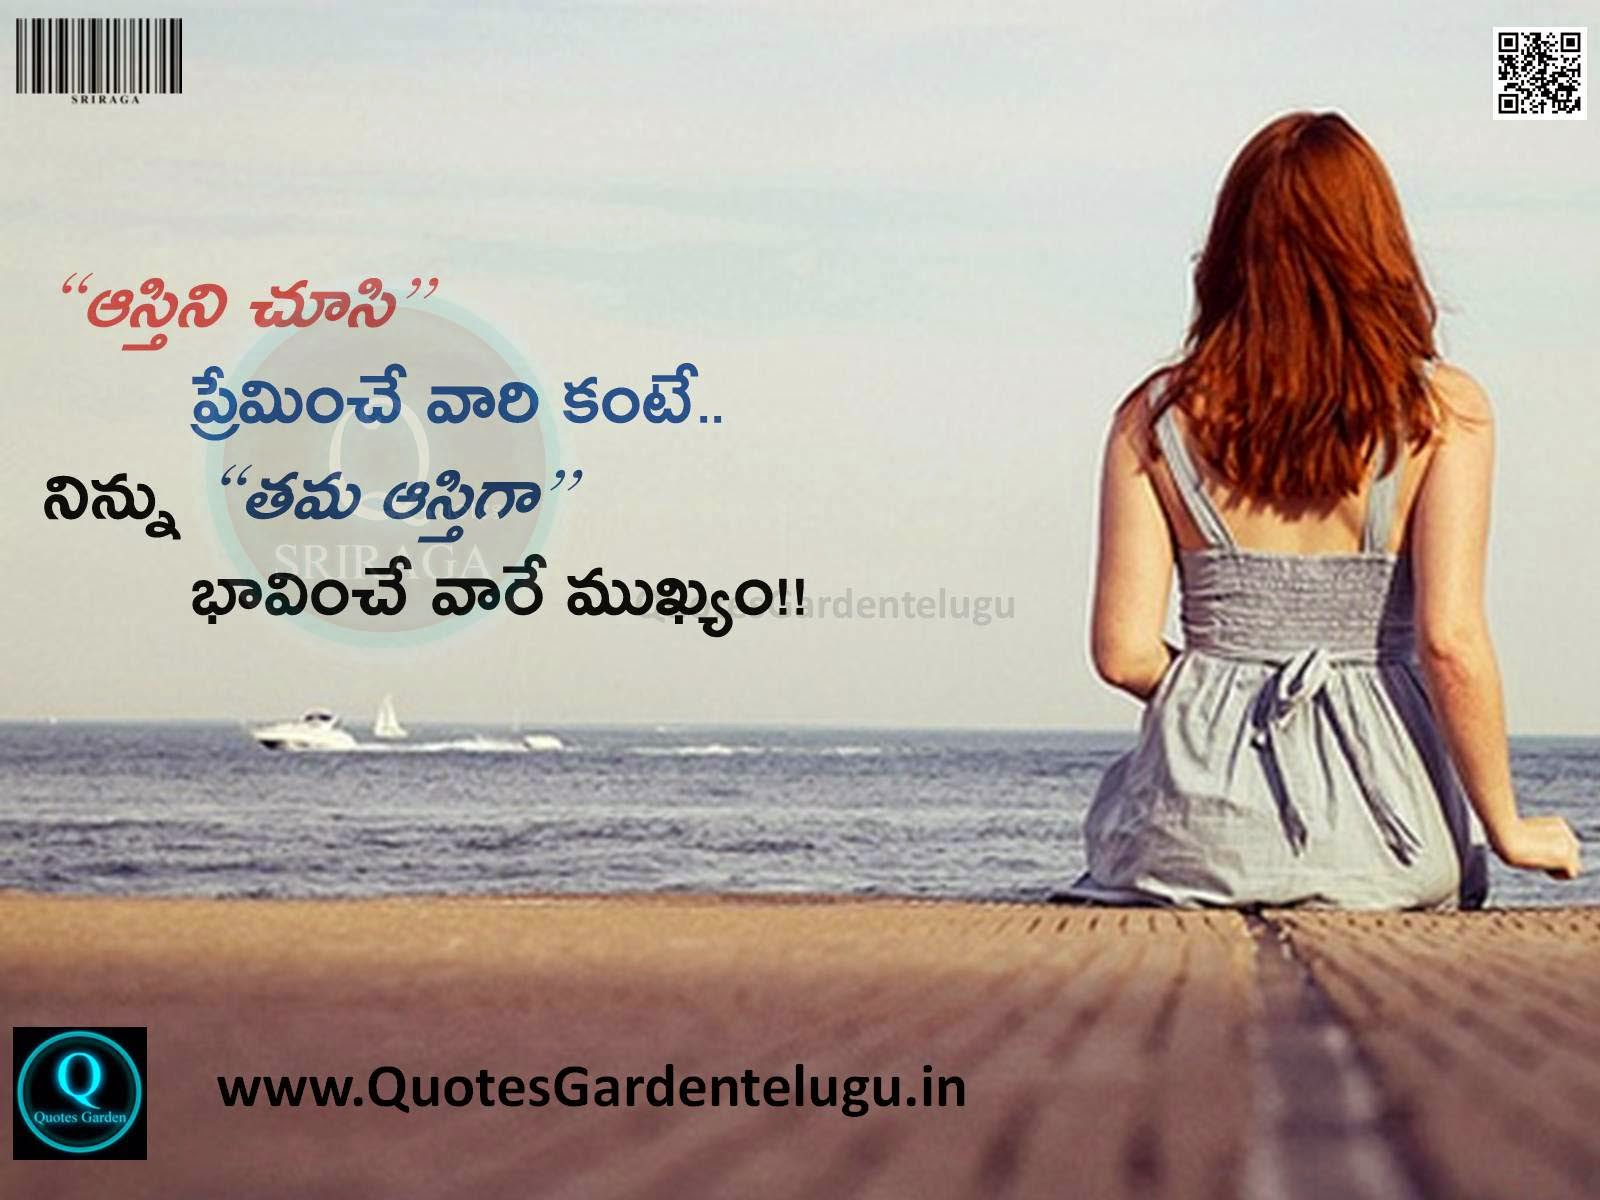 Quotes About Friendship Ravikumar Ravikumar9063870 On Pinterest